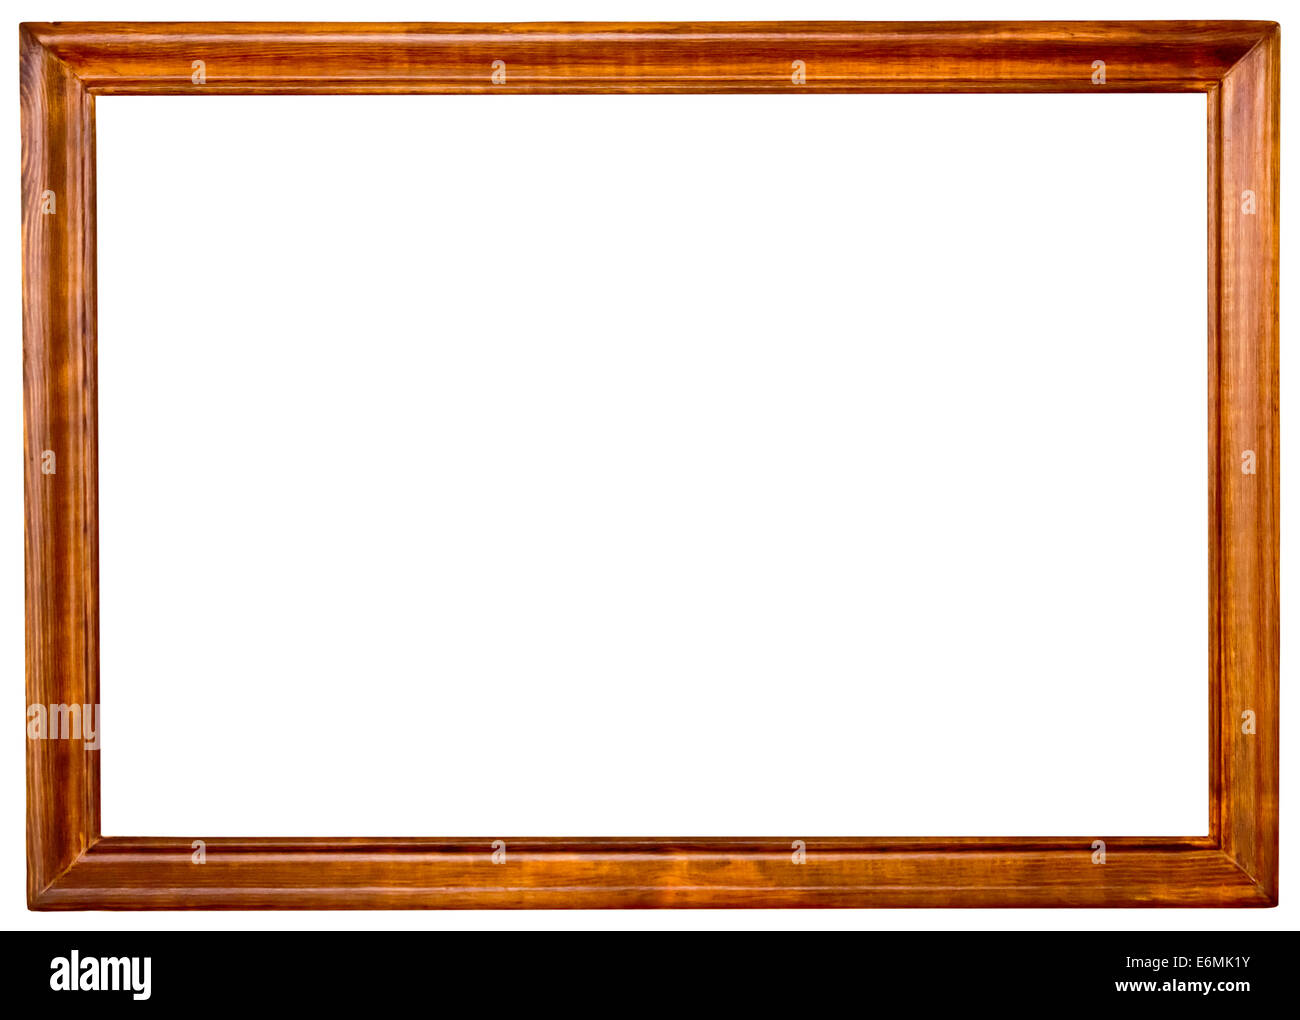 wood frame isolated on white background - Stock Image